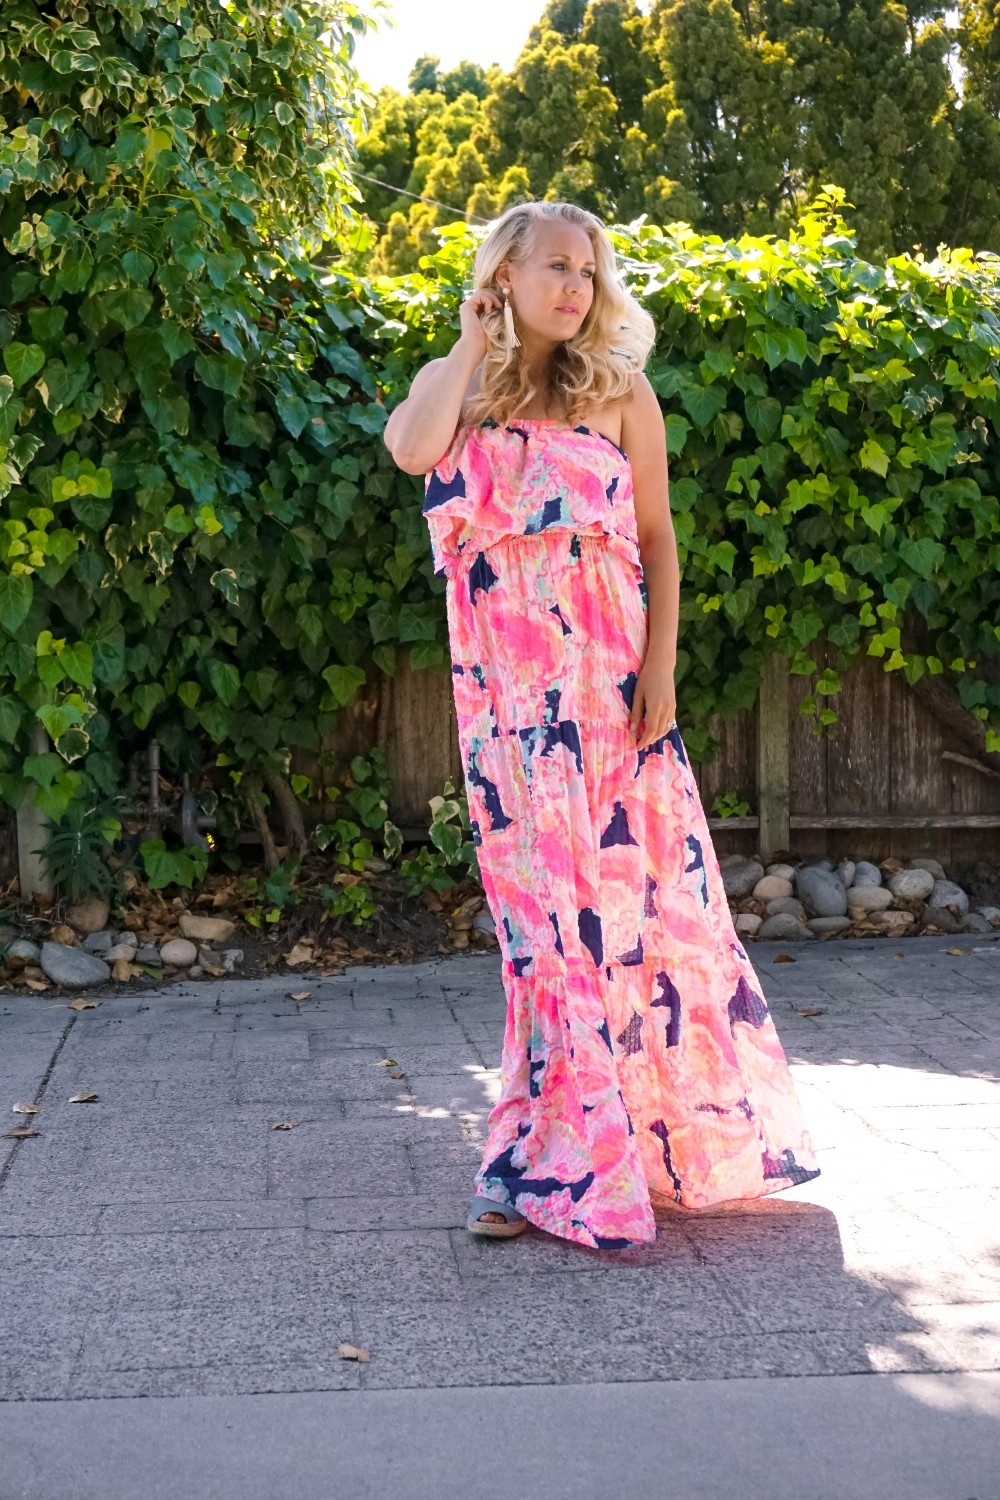 Lilly Pulitzer-Resort 365-Outfit Inspiration-Summer Style-Summer Maxi Dress-Summer 2017 Trends-Have Need Want 3